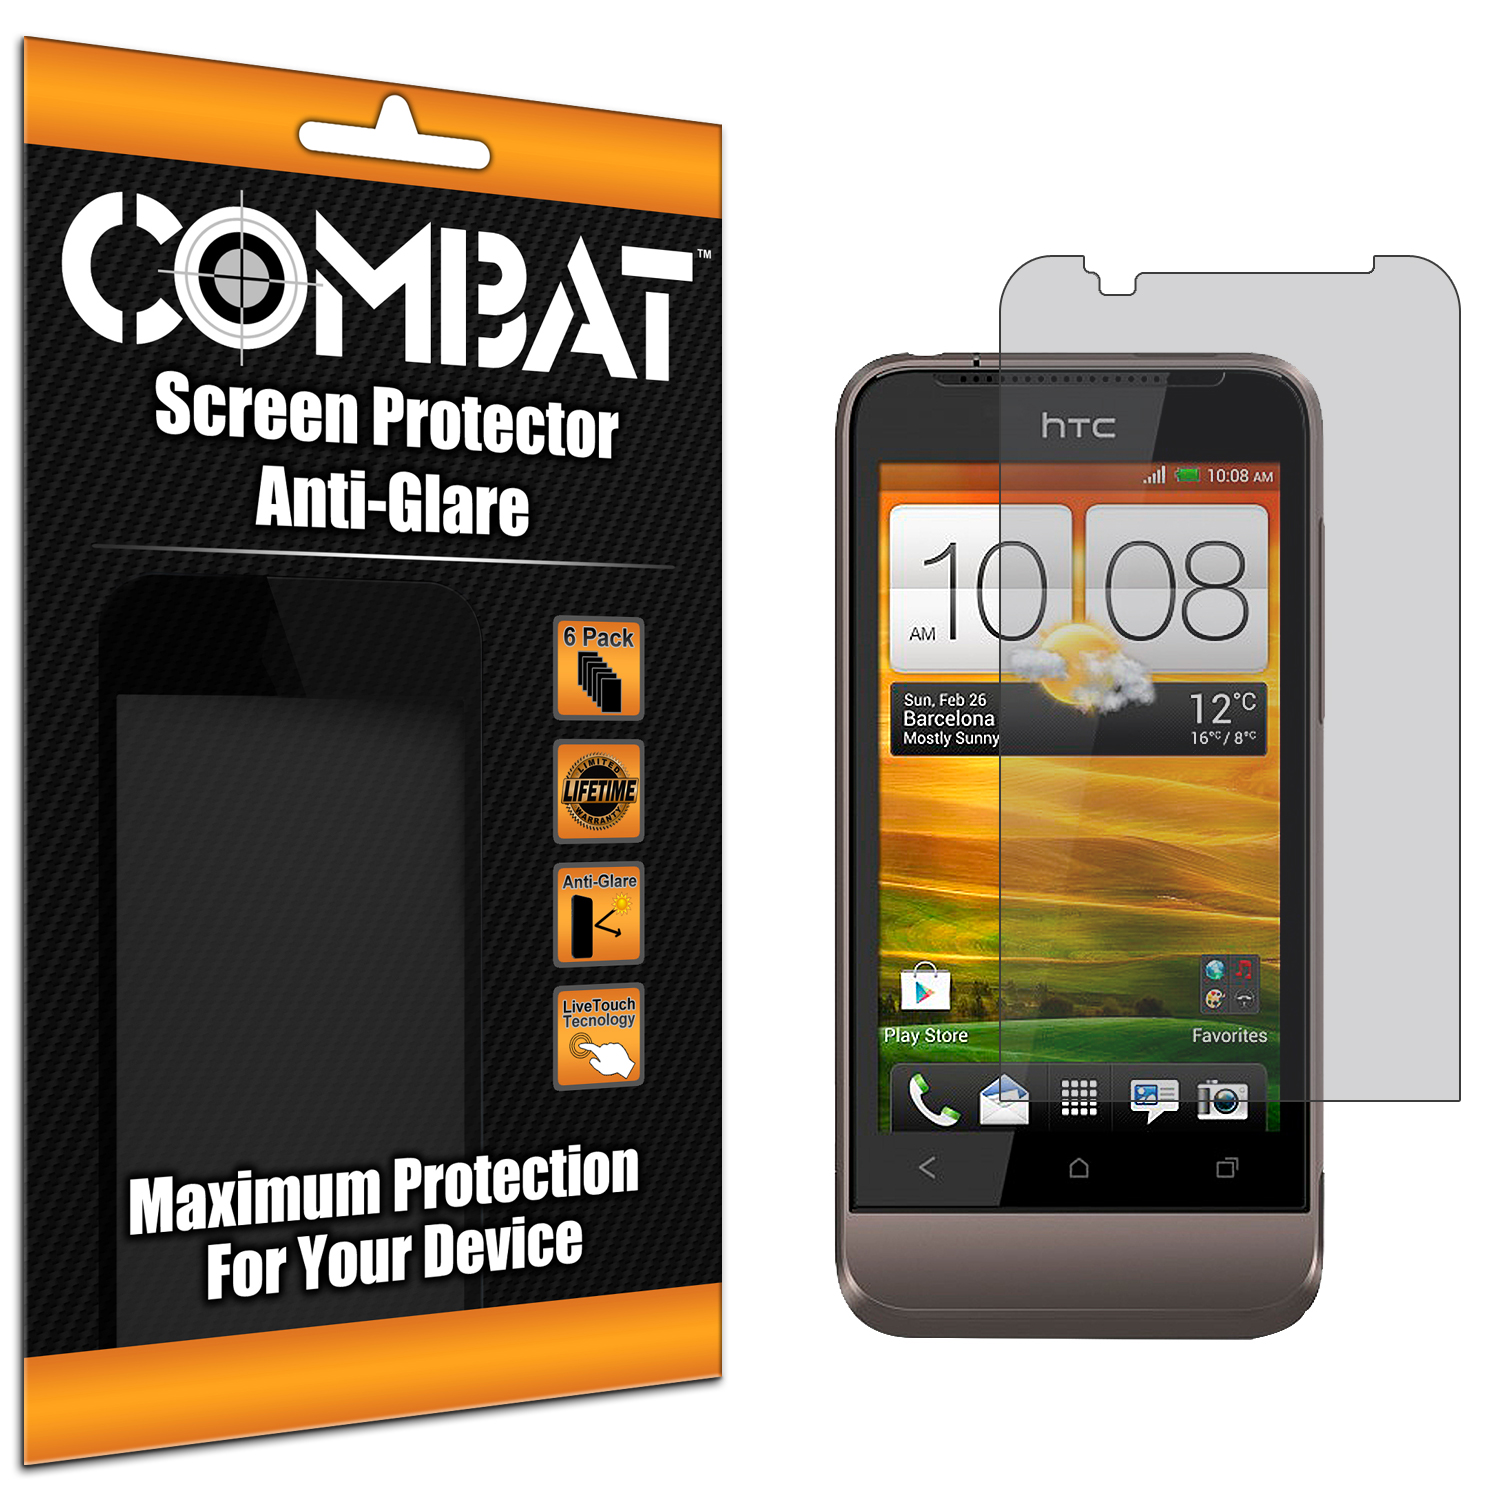 HTC One V Combat 6 Pack Anti-Glare Matte Screen Protector